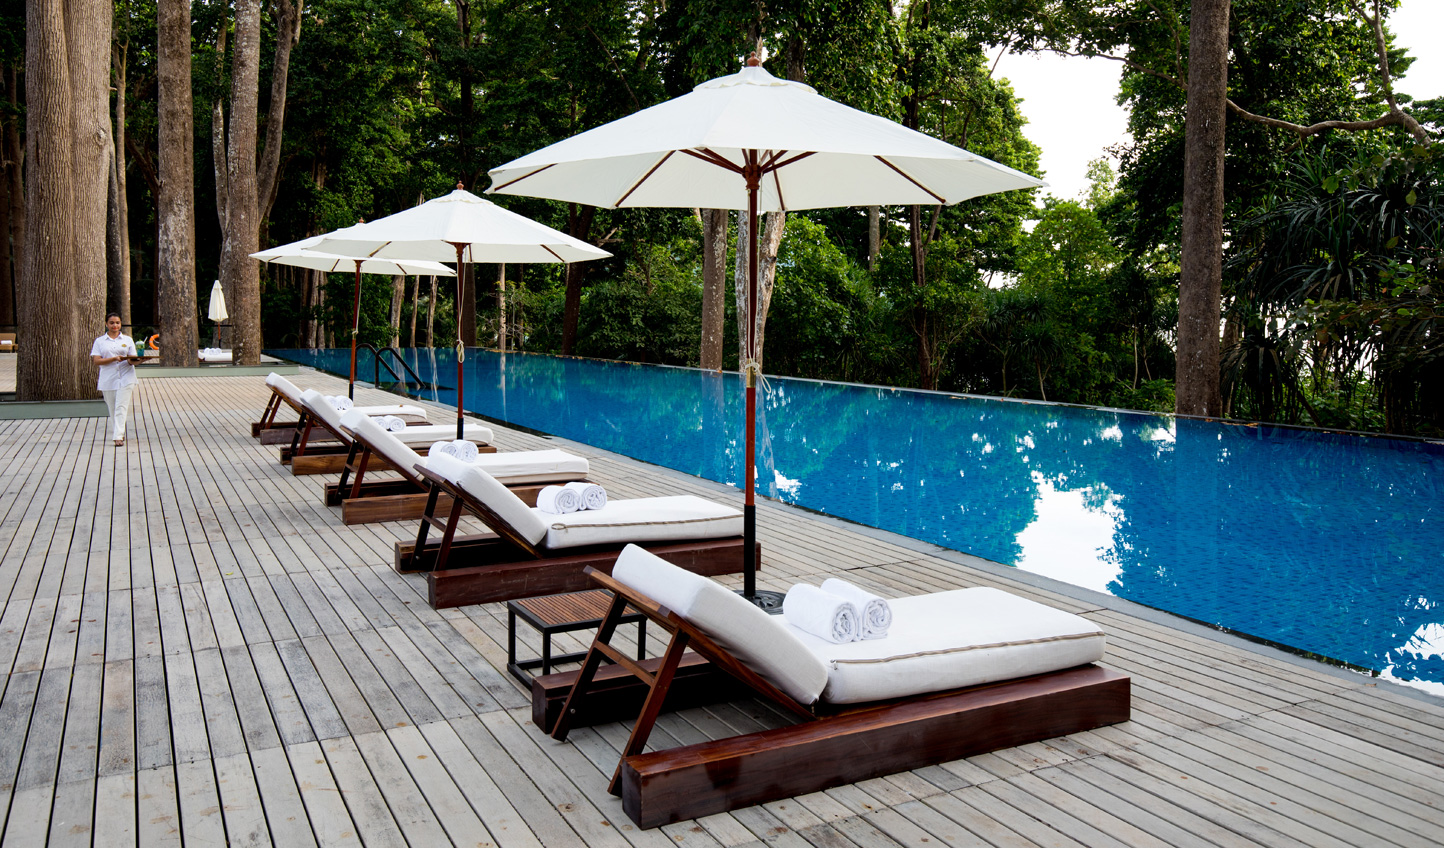 Relax by the pool and feel your stresses slip away